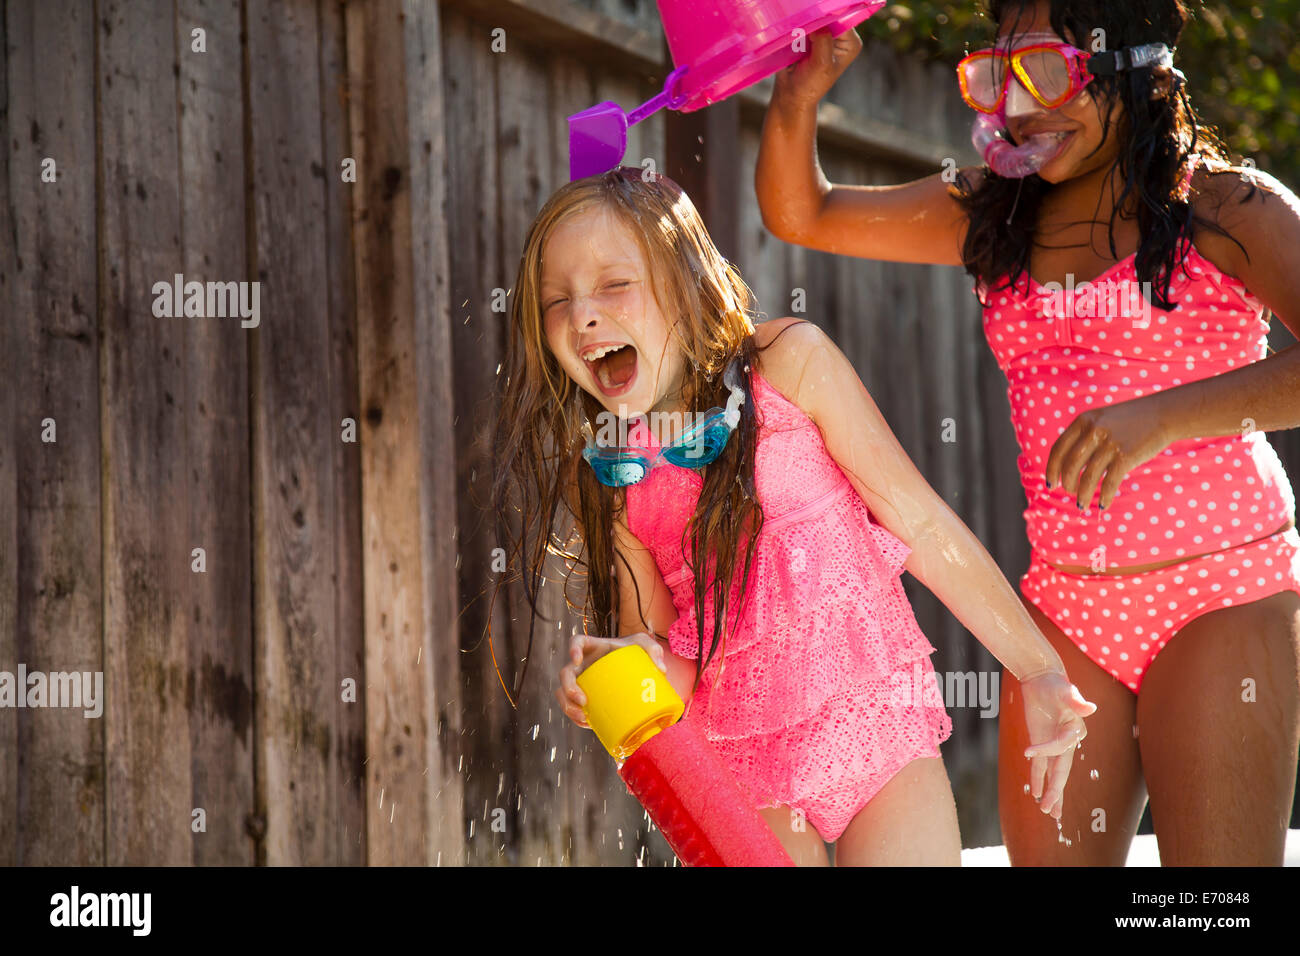 Two girls chasing each other with water in garden - Stock Image